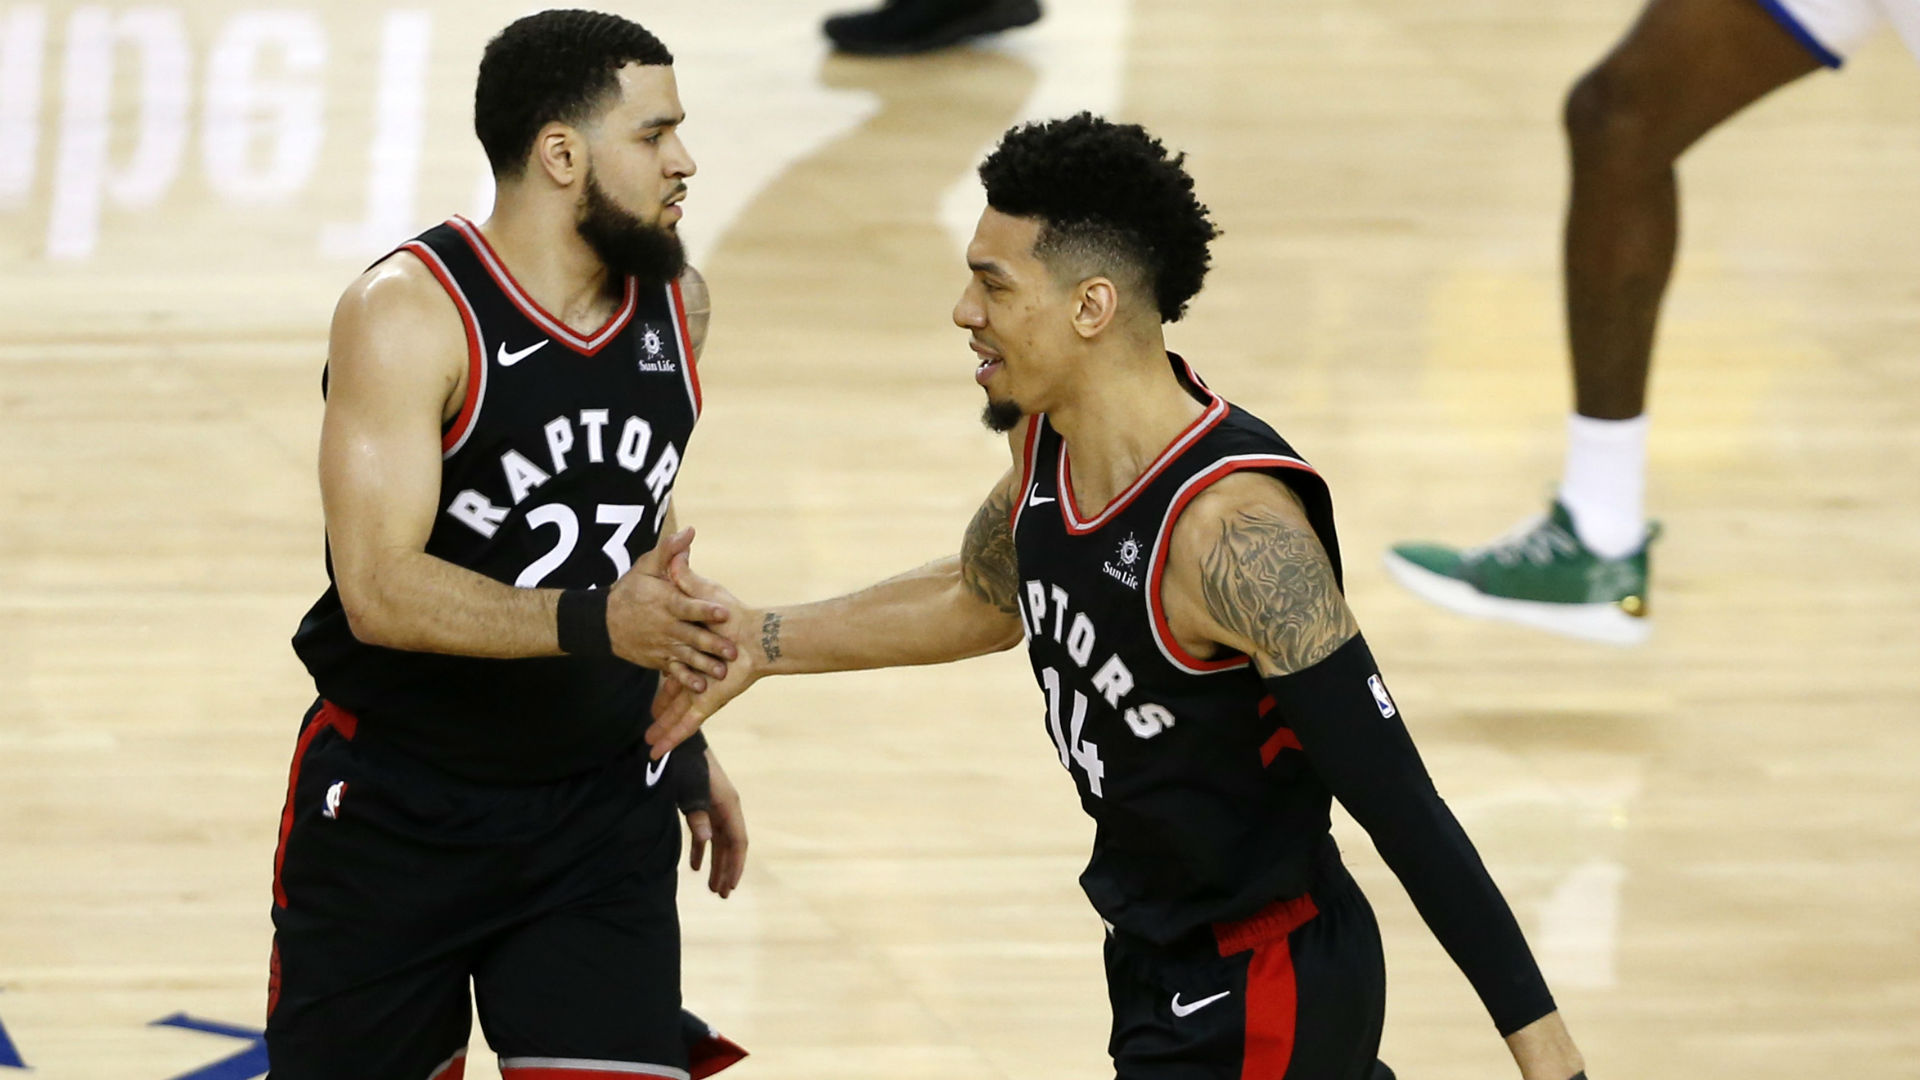 e3641503fc6 Warriors results: Toronto coasts to Game 3 victory despite 47 points from  Steph Curry | Sporting News